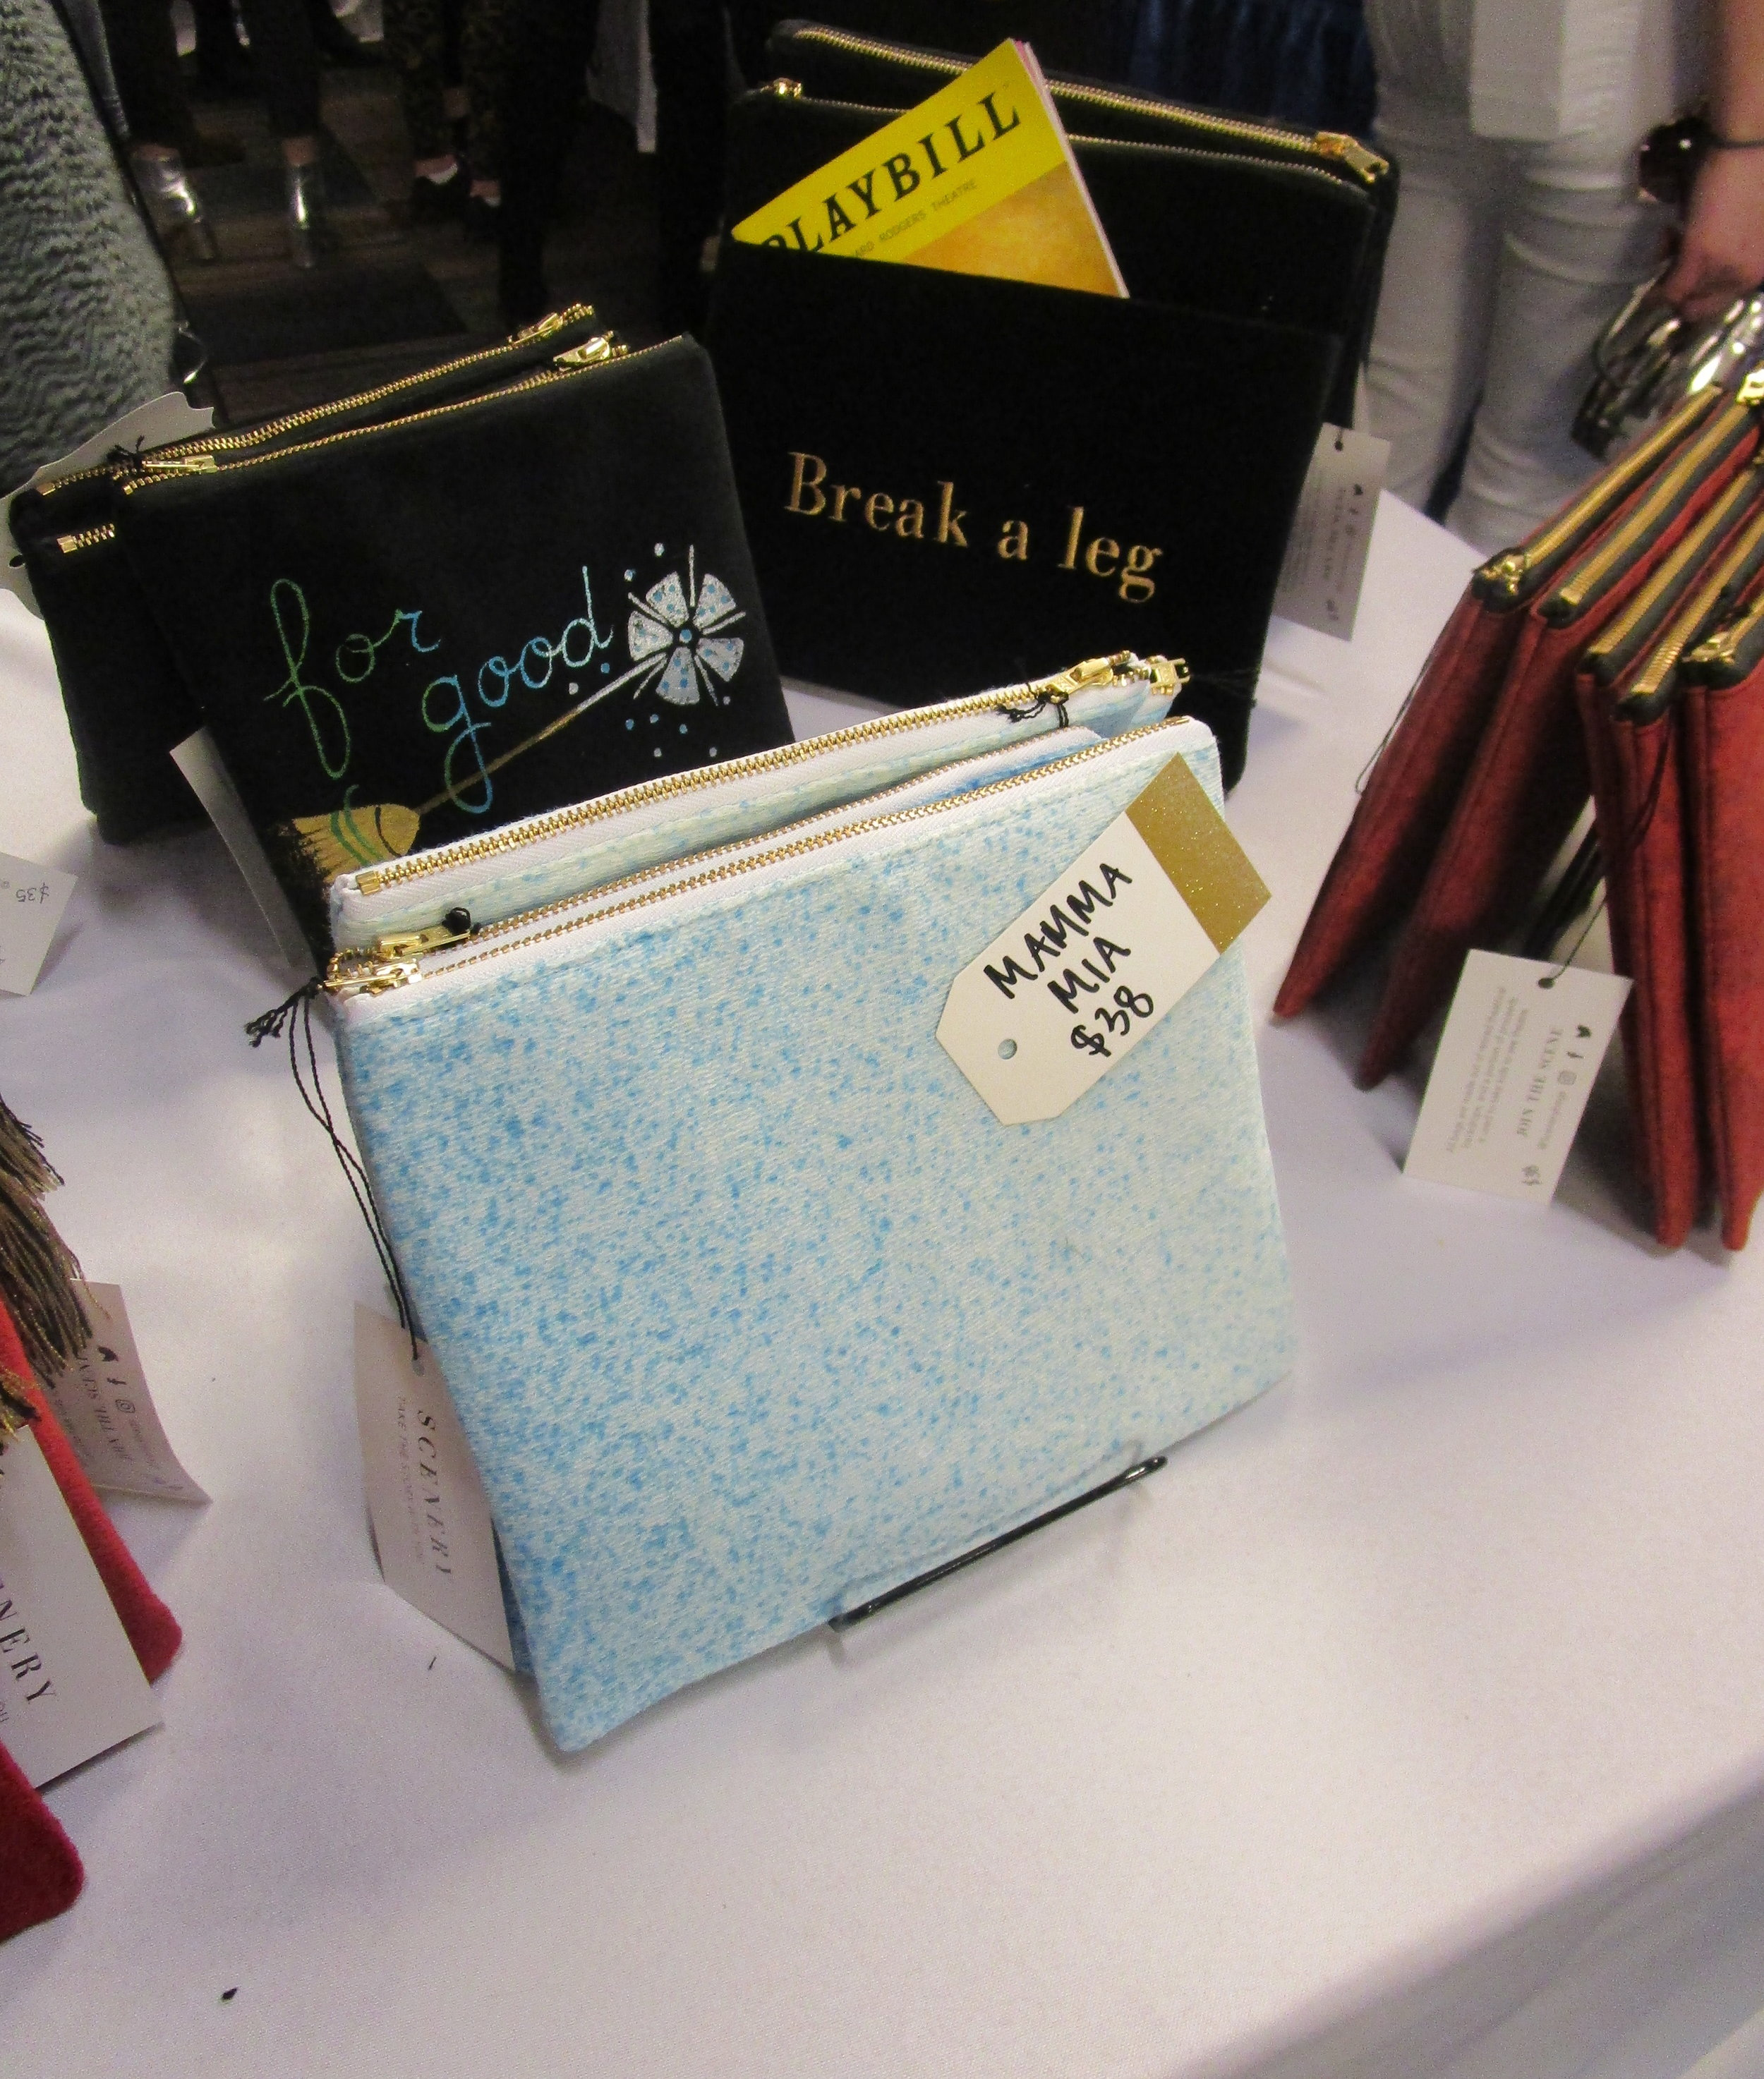 Scenery Bags booth at BroadwayCon. Photo credit: Lisa Granshaw